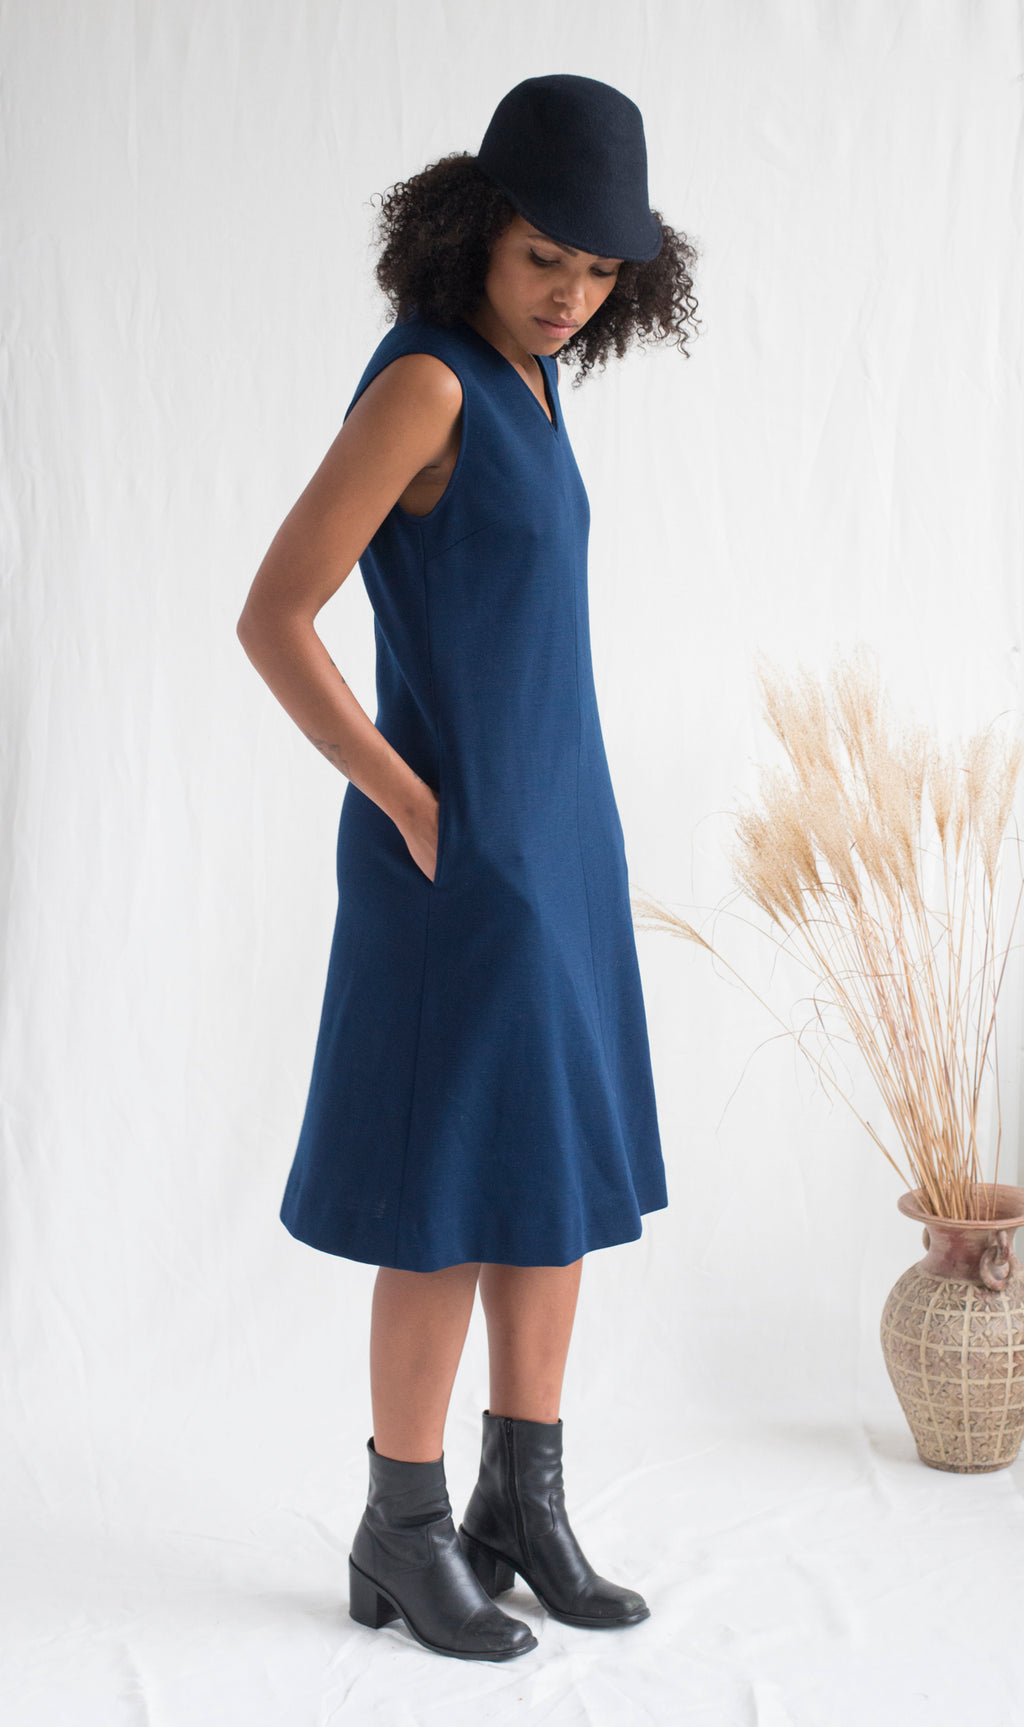 Pendleton Wool Dress - Femmes des Lunes